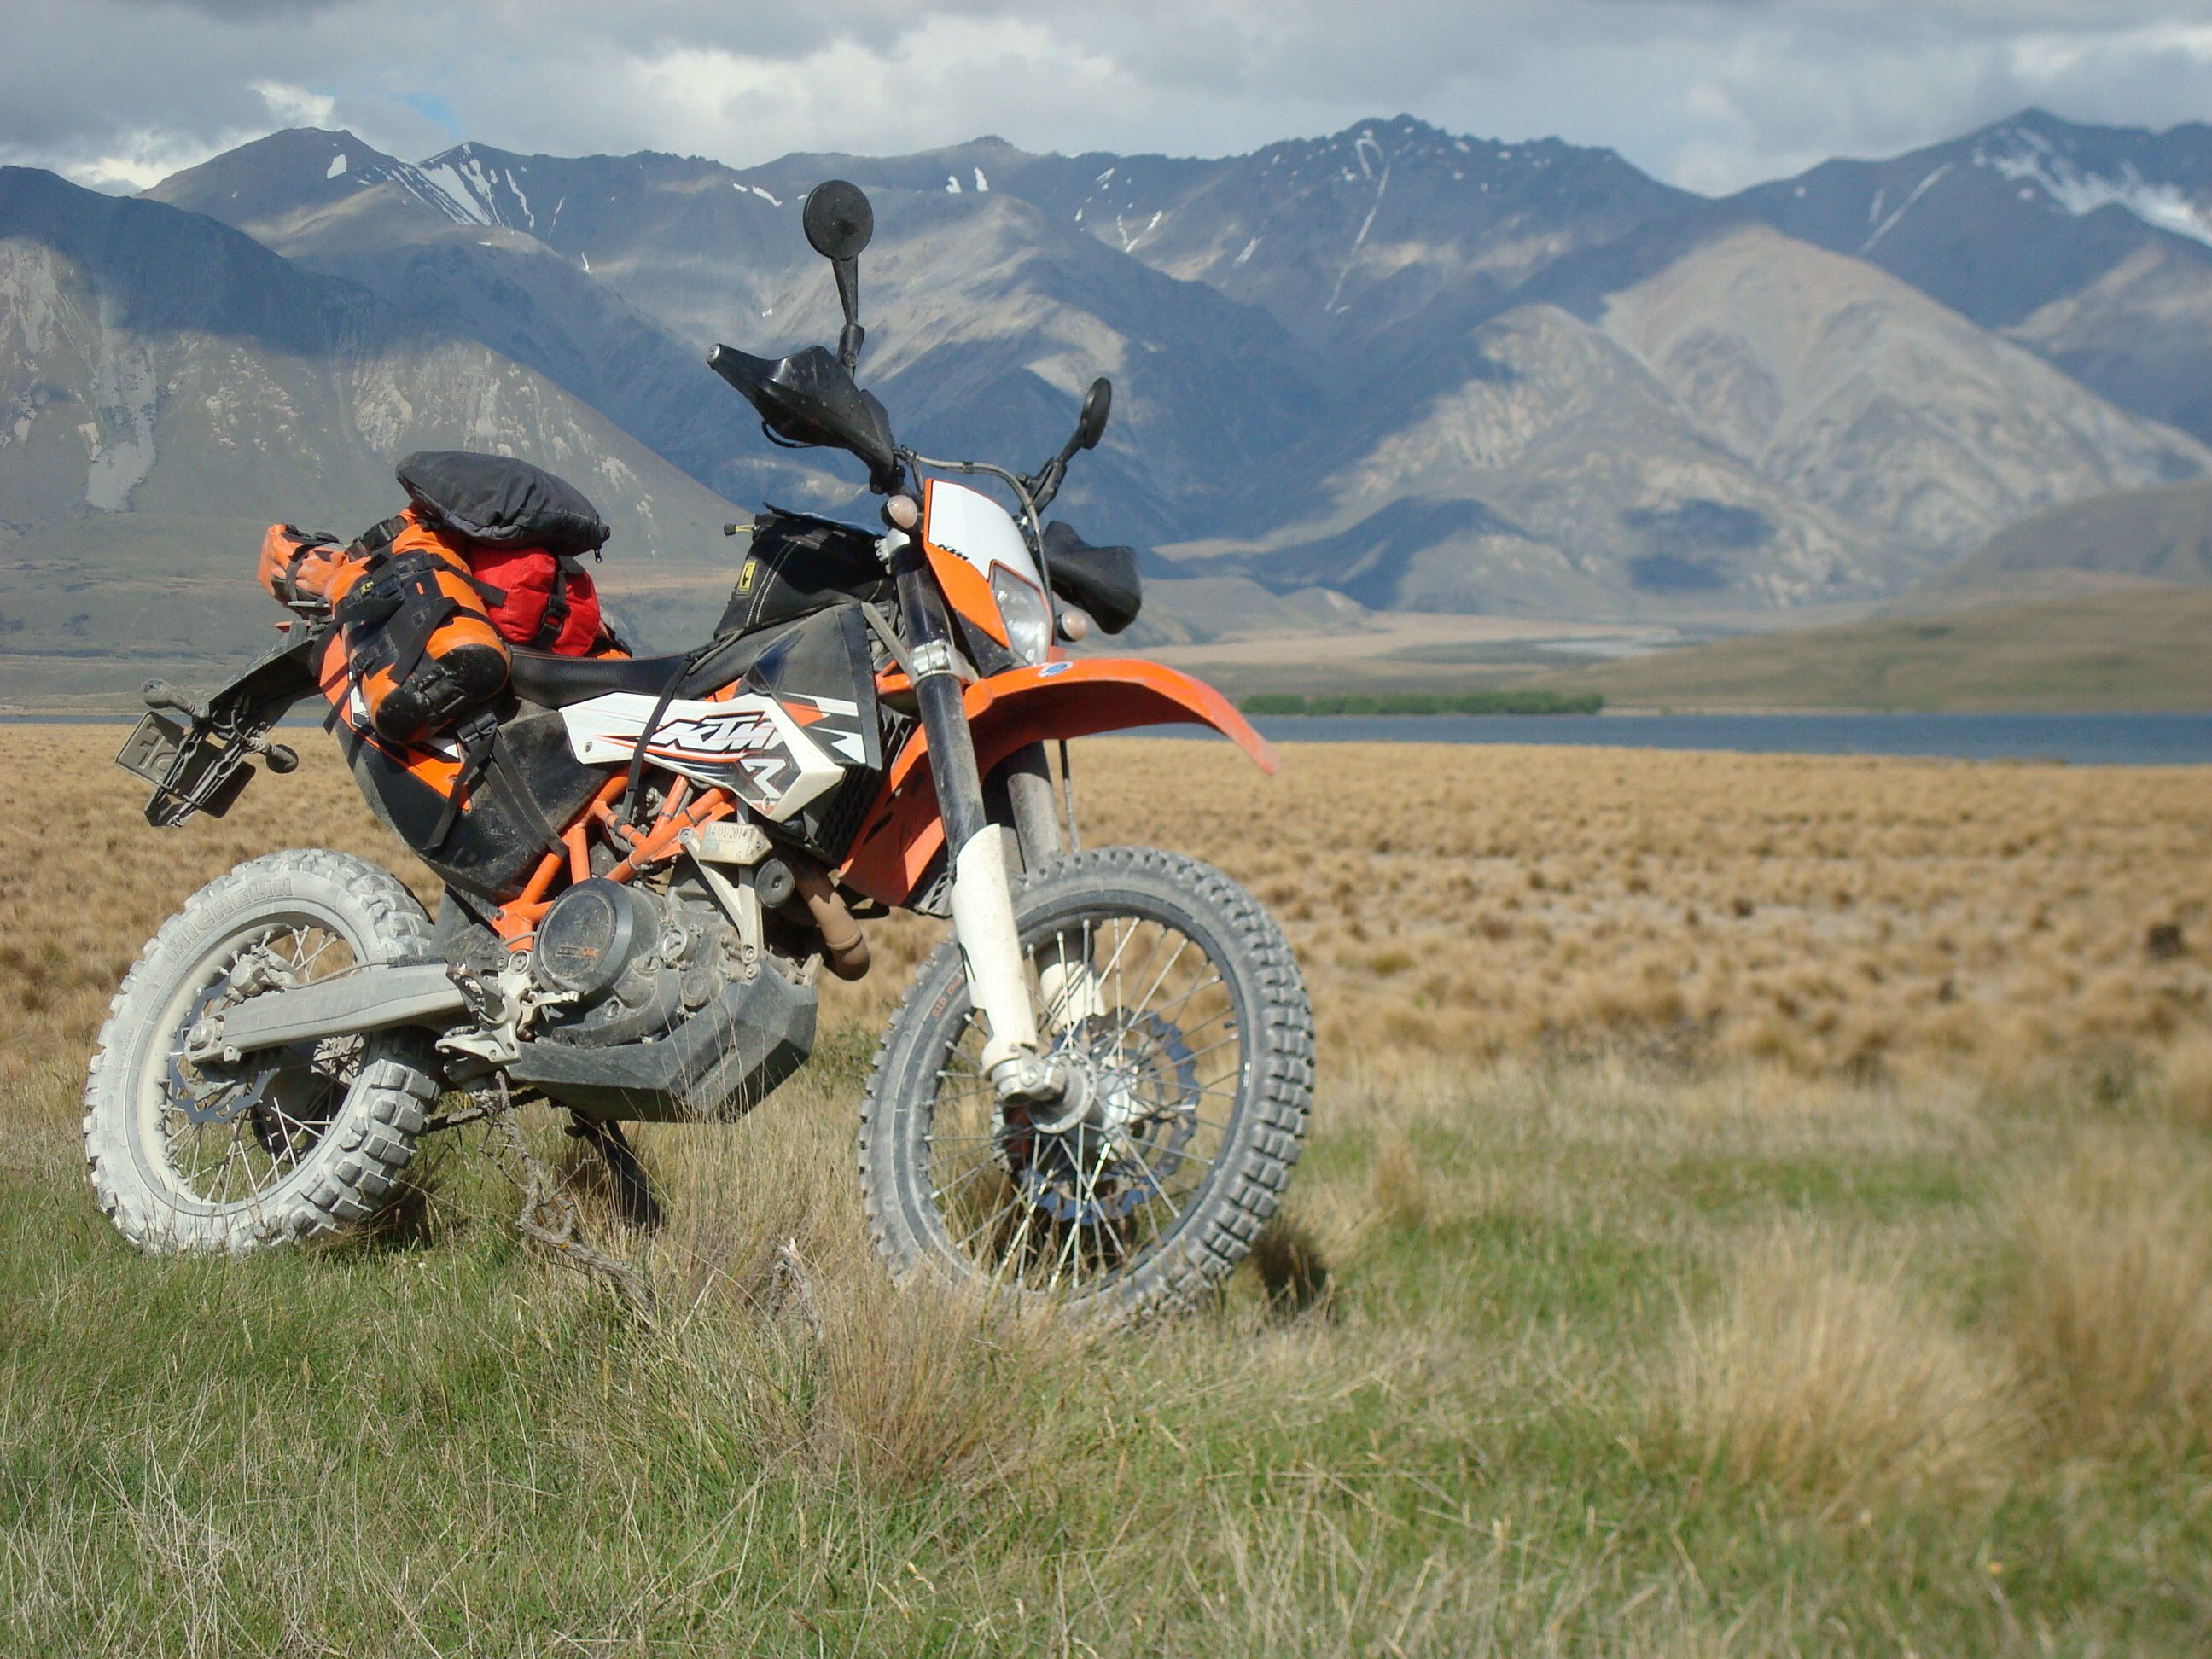 Supermoto ktm 690 stunt concept bikemotorcycletuned car tuning car - Ktm 690 Enduro R I M Going To Get One Of These Someday And